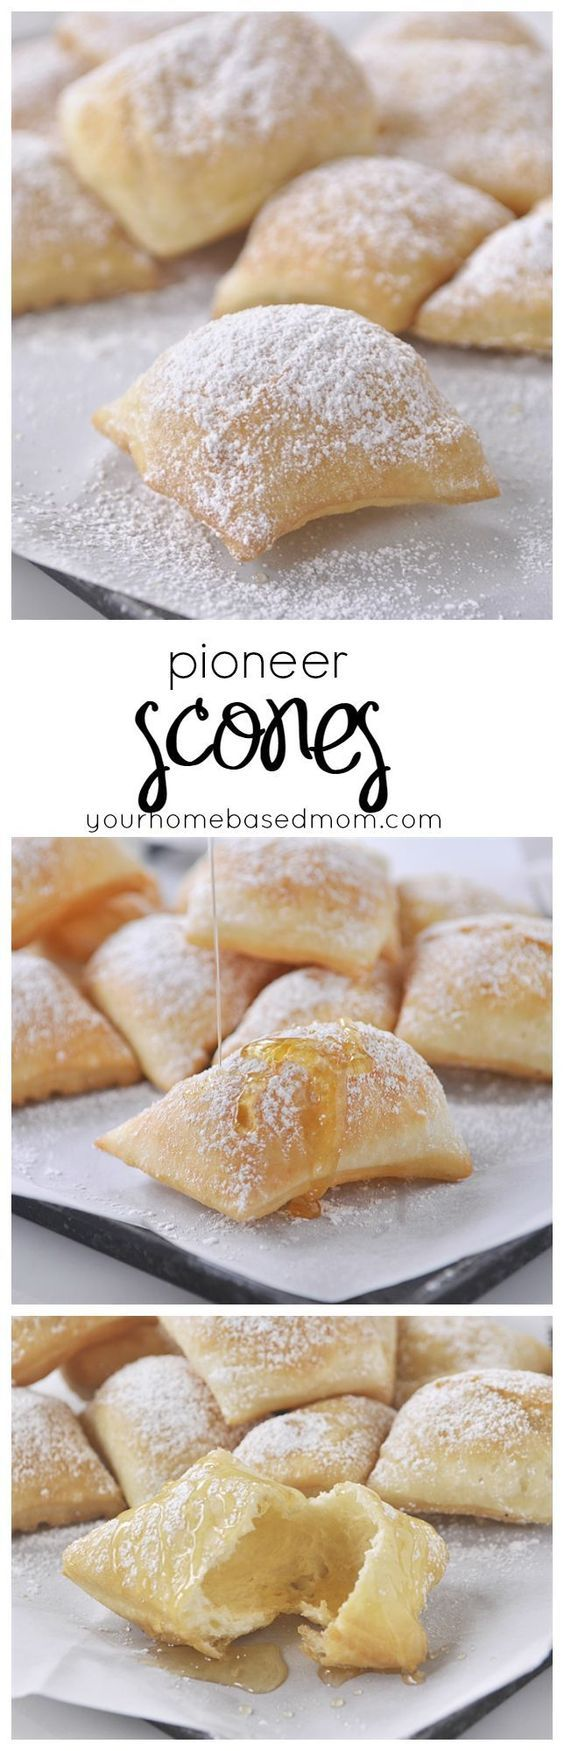 Pioneer Scone Recipe - they are little pillows of heaven! Top them with honey and butter!